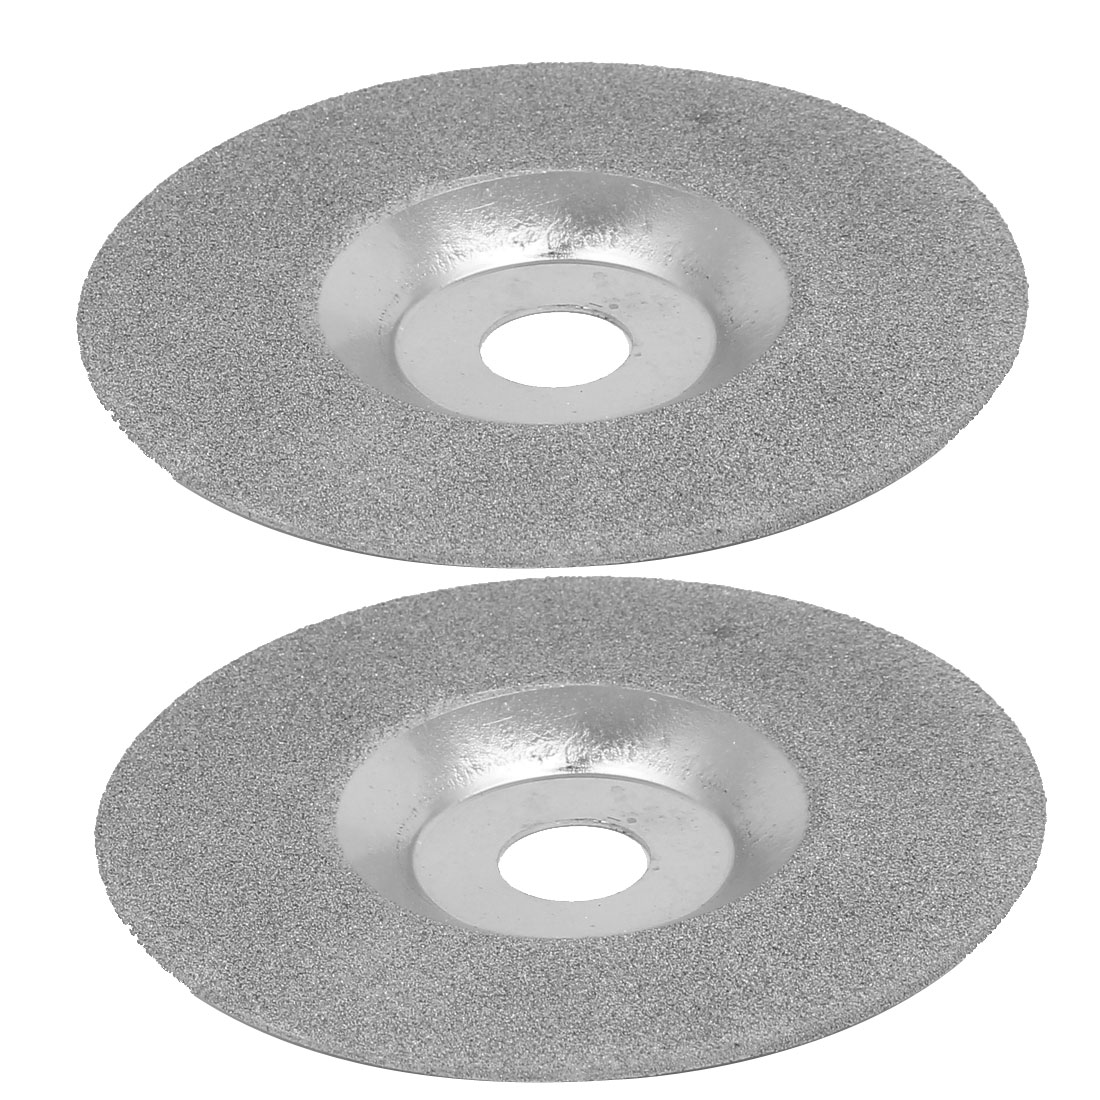 100mmx16mm Metal Diamond Coated Bowl-Shaped Grinding Cutting Discs Wheels 2pcs